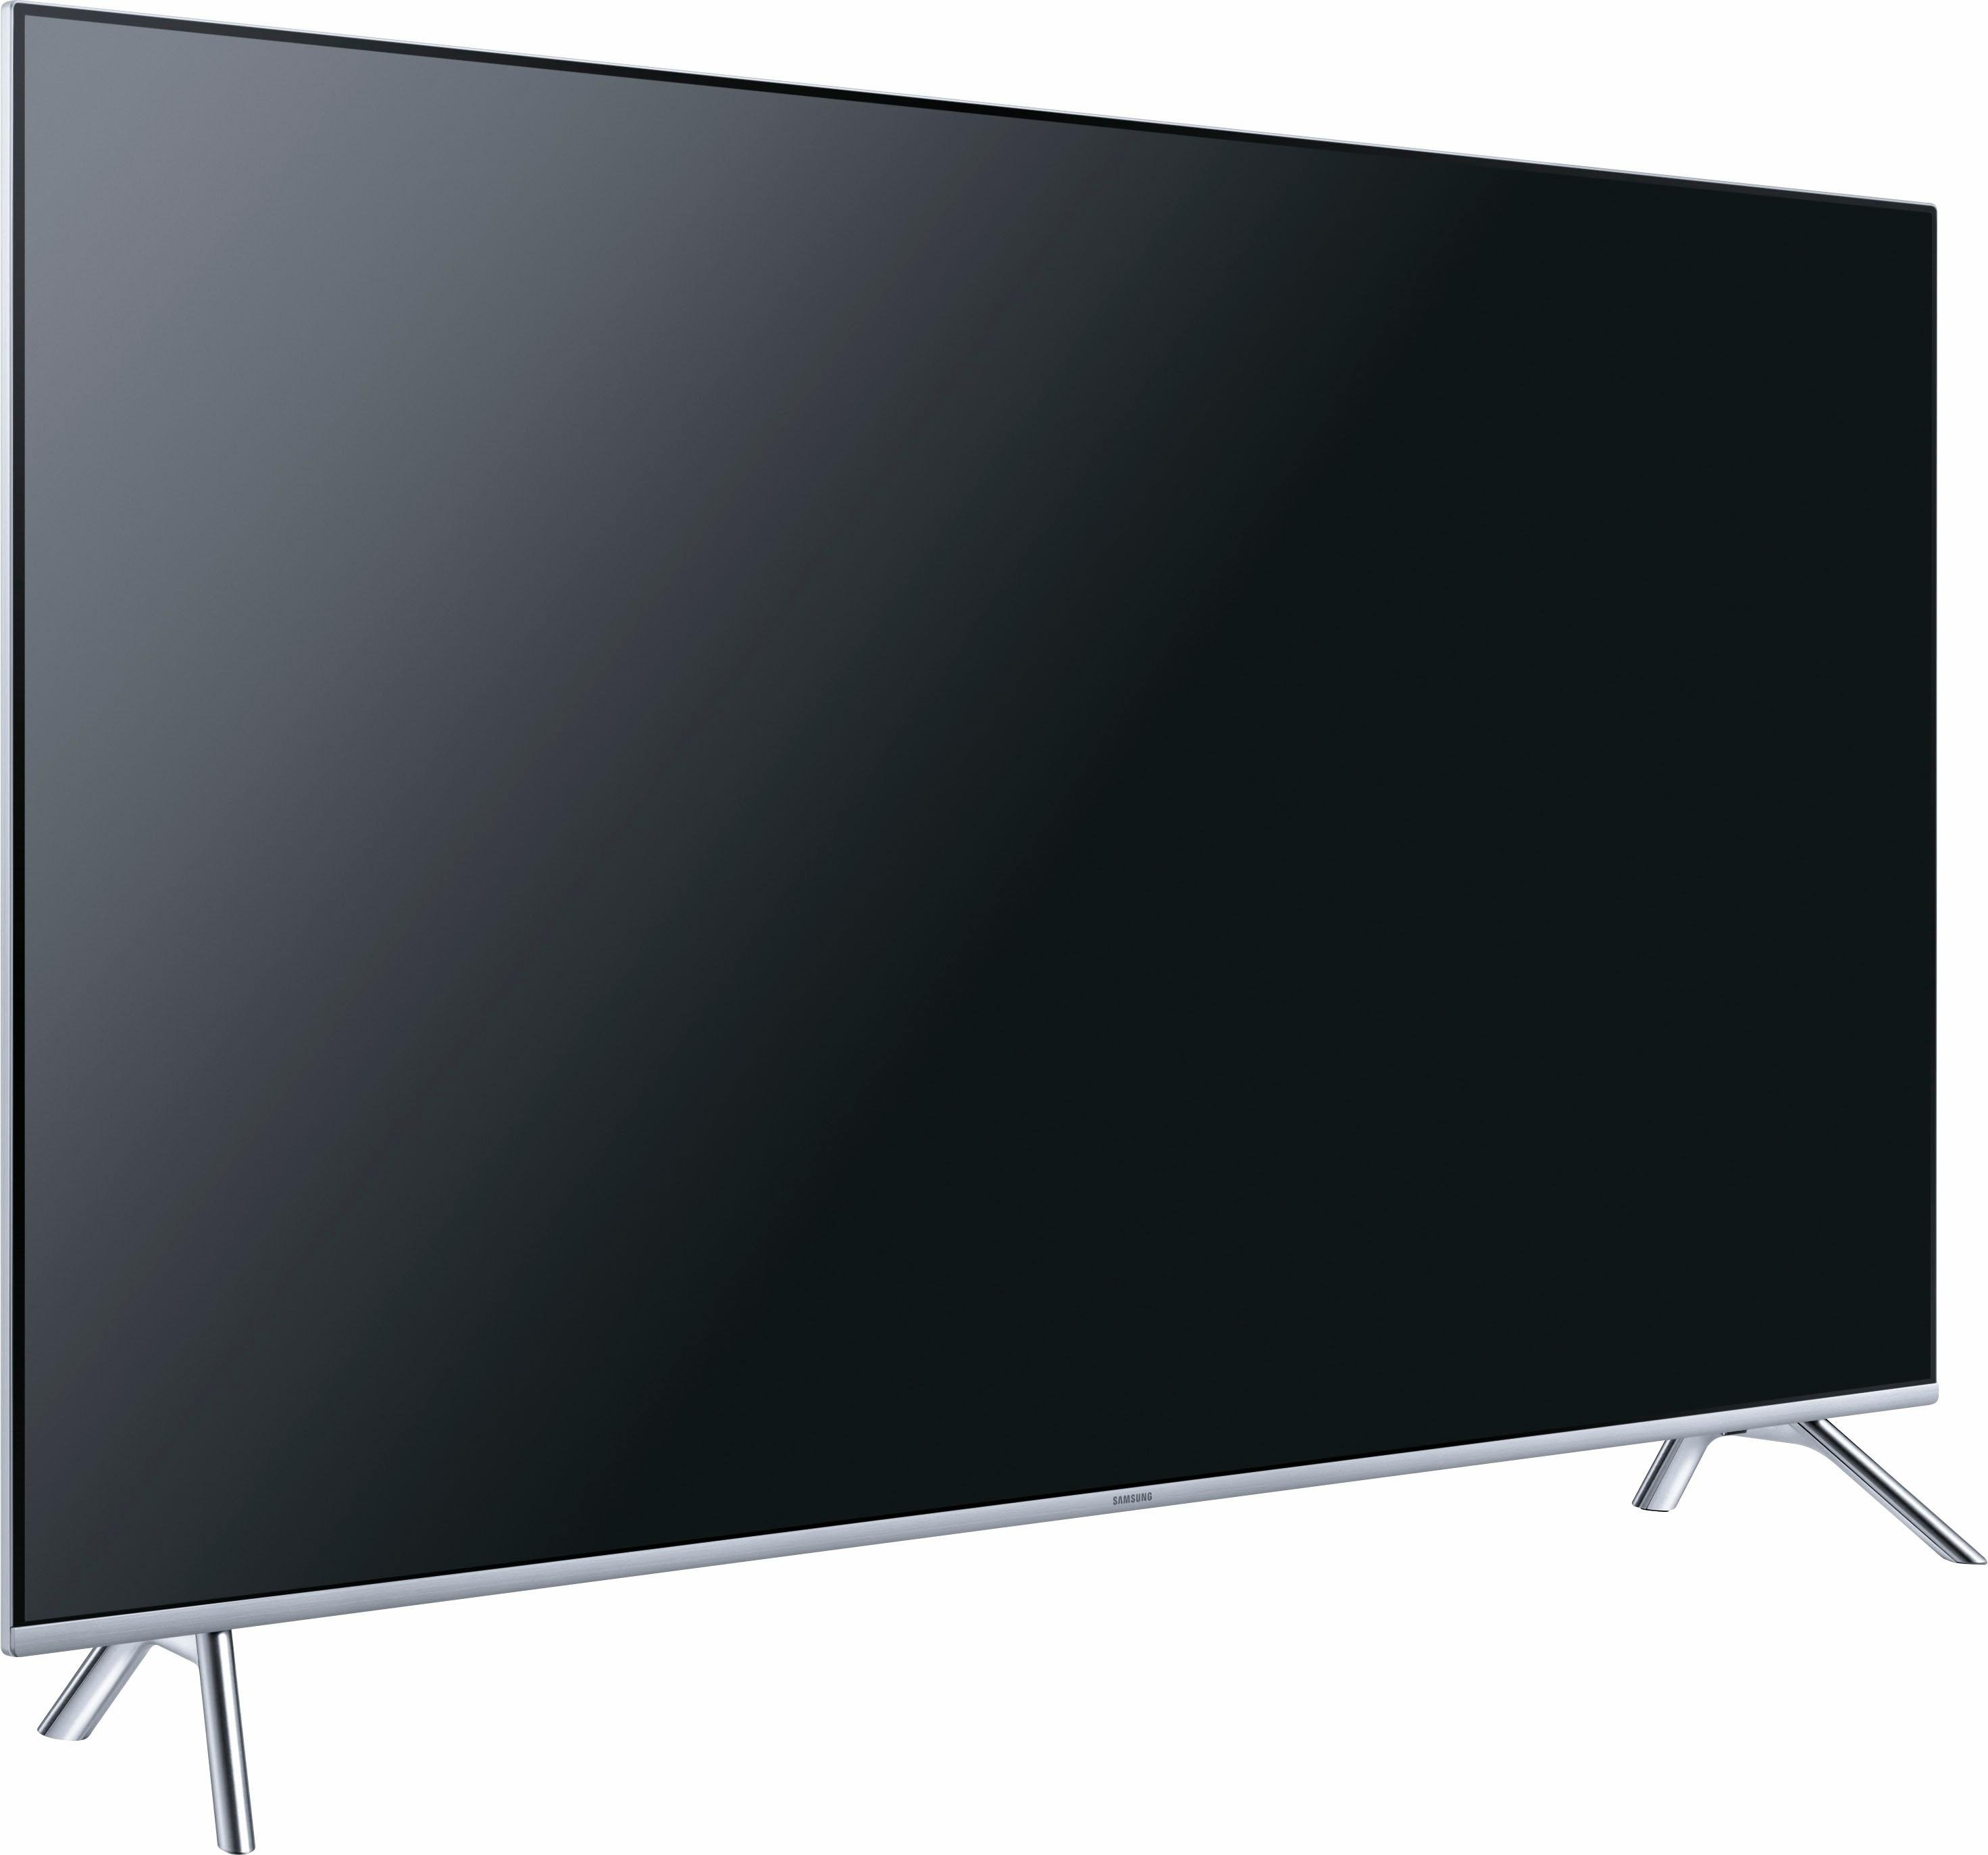 samsung ue55mu7009txzg led tv 138 cm 55 inch uhd 4k smart tv vind je bij otto. Black Bedroom Furniture Sets. Home Design Ideas